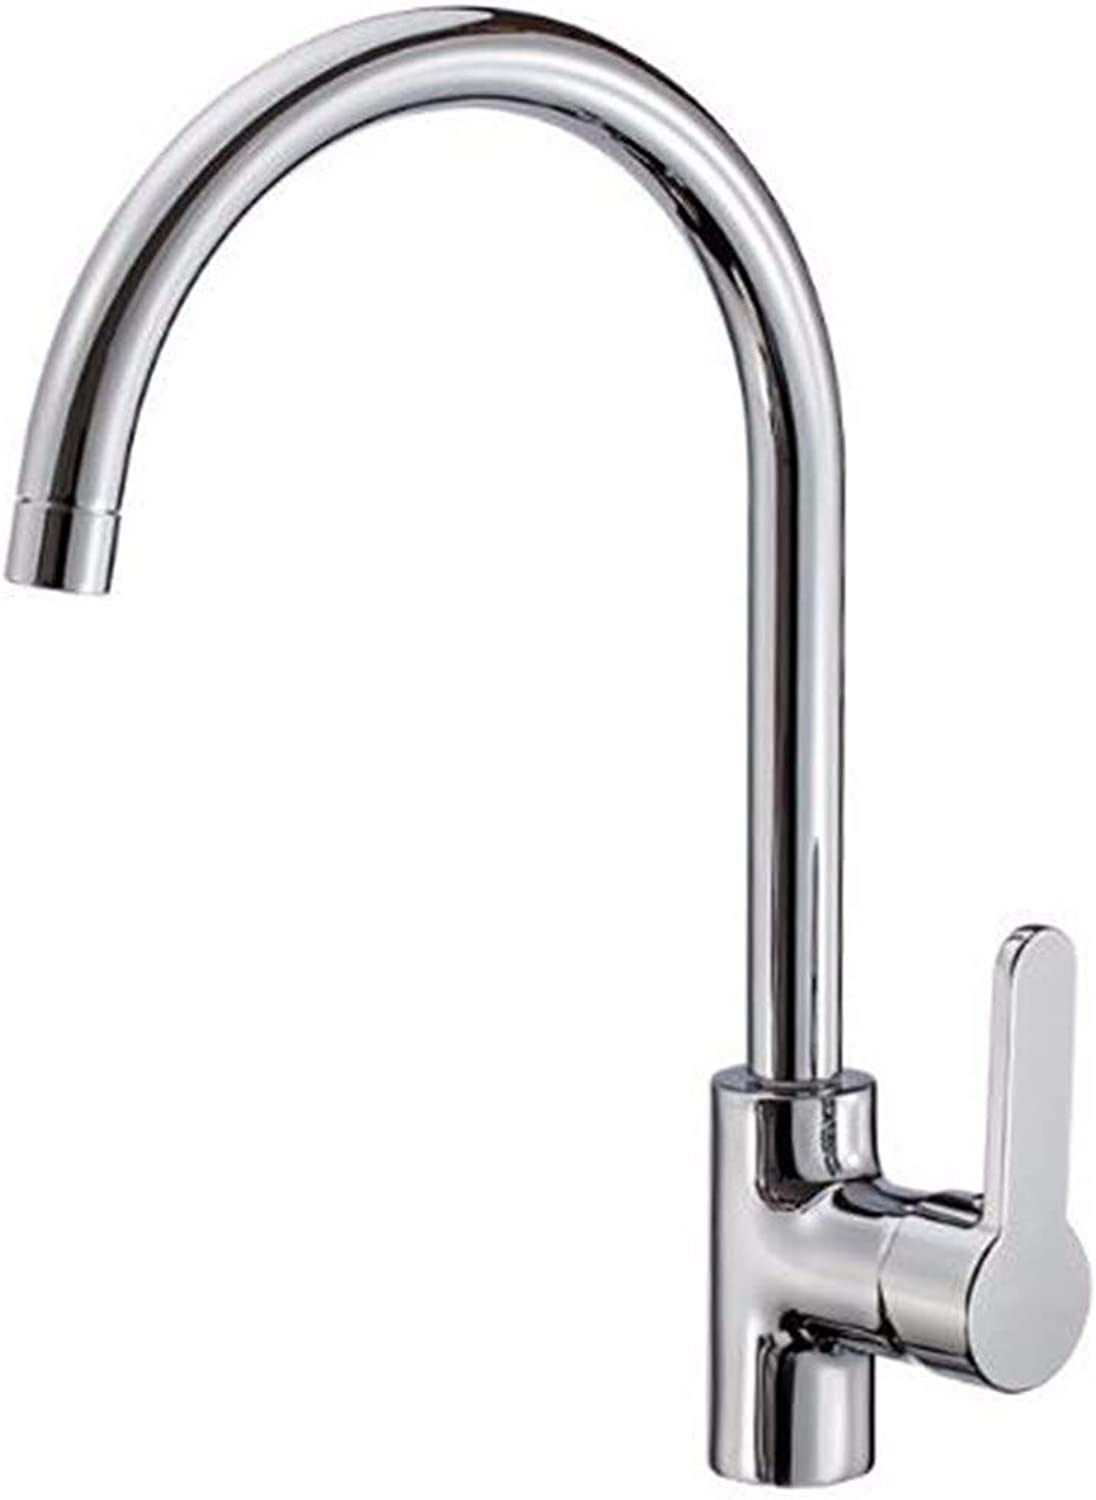 Kitchen faucet All Copper Kitchen Hot And Cold Faucet Sink Laundry Cabinet Pots And Pots.